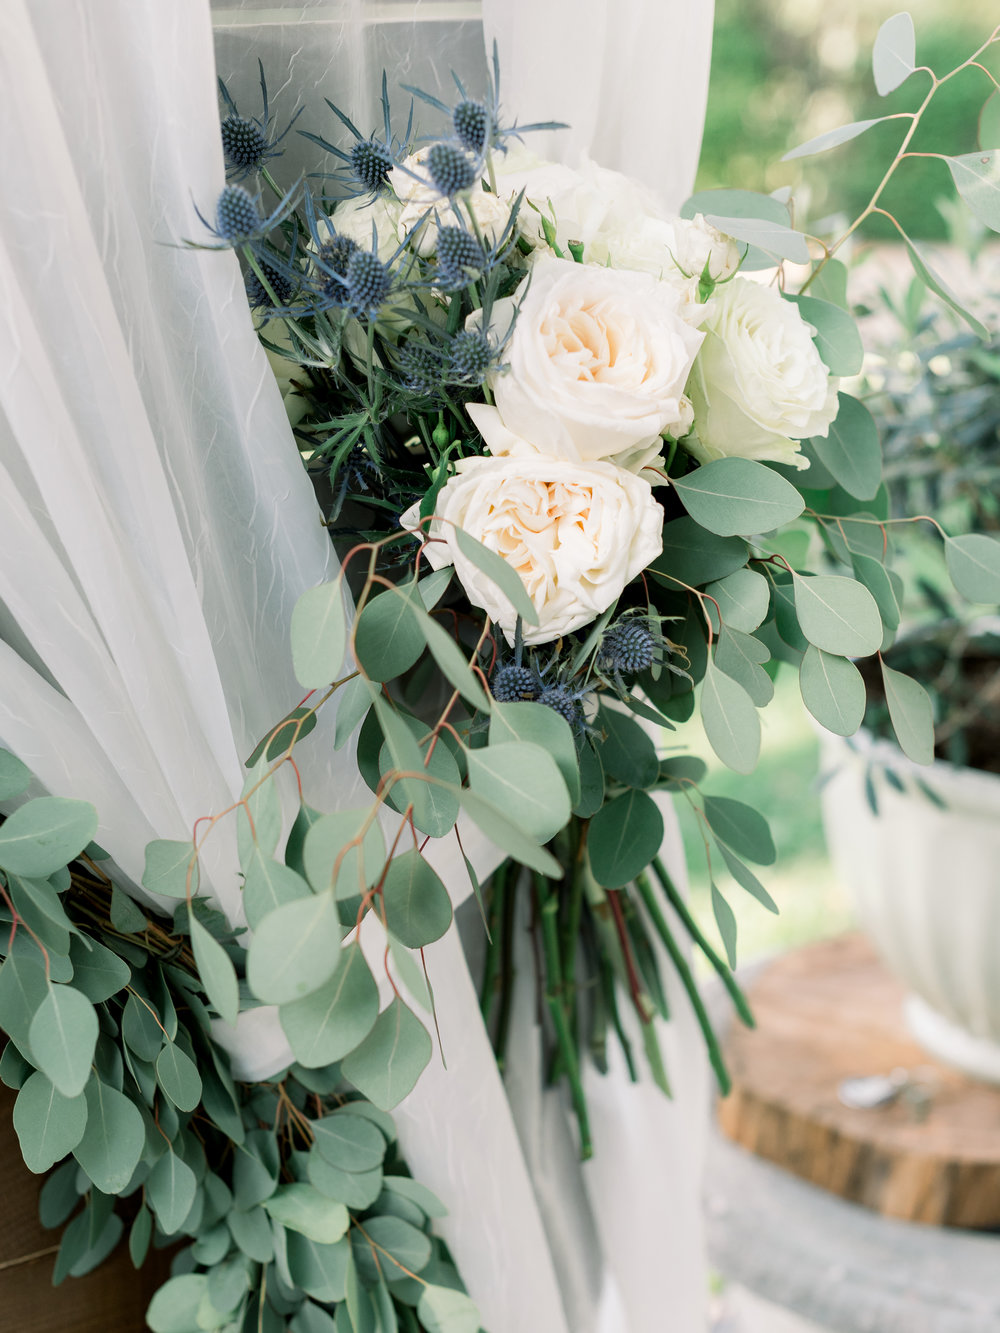 cream-rose-and-blue-thistle-garland-wrapped-around-wedding-altar.jpg